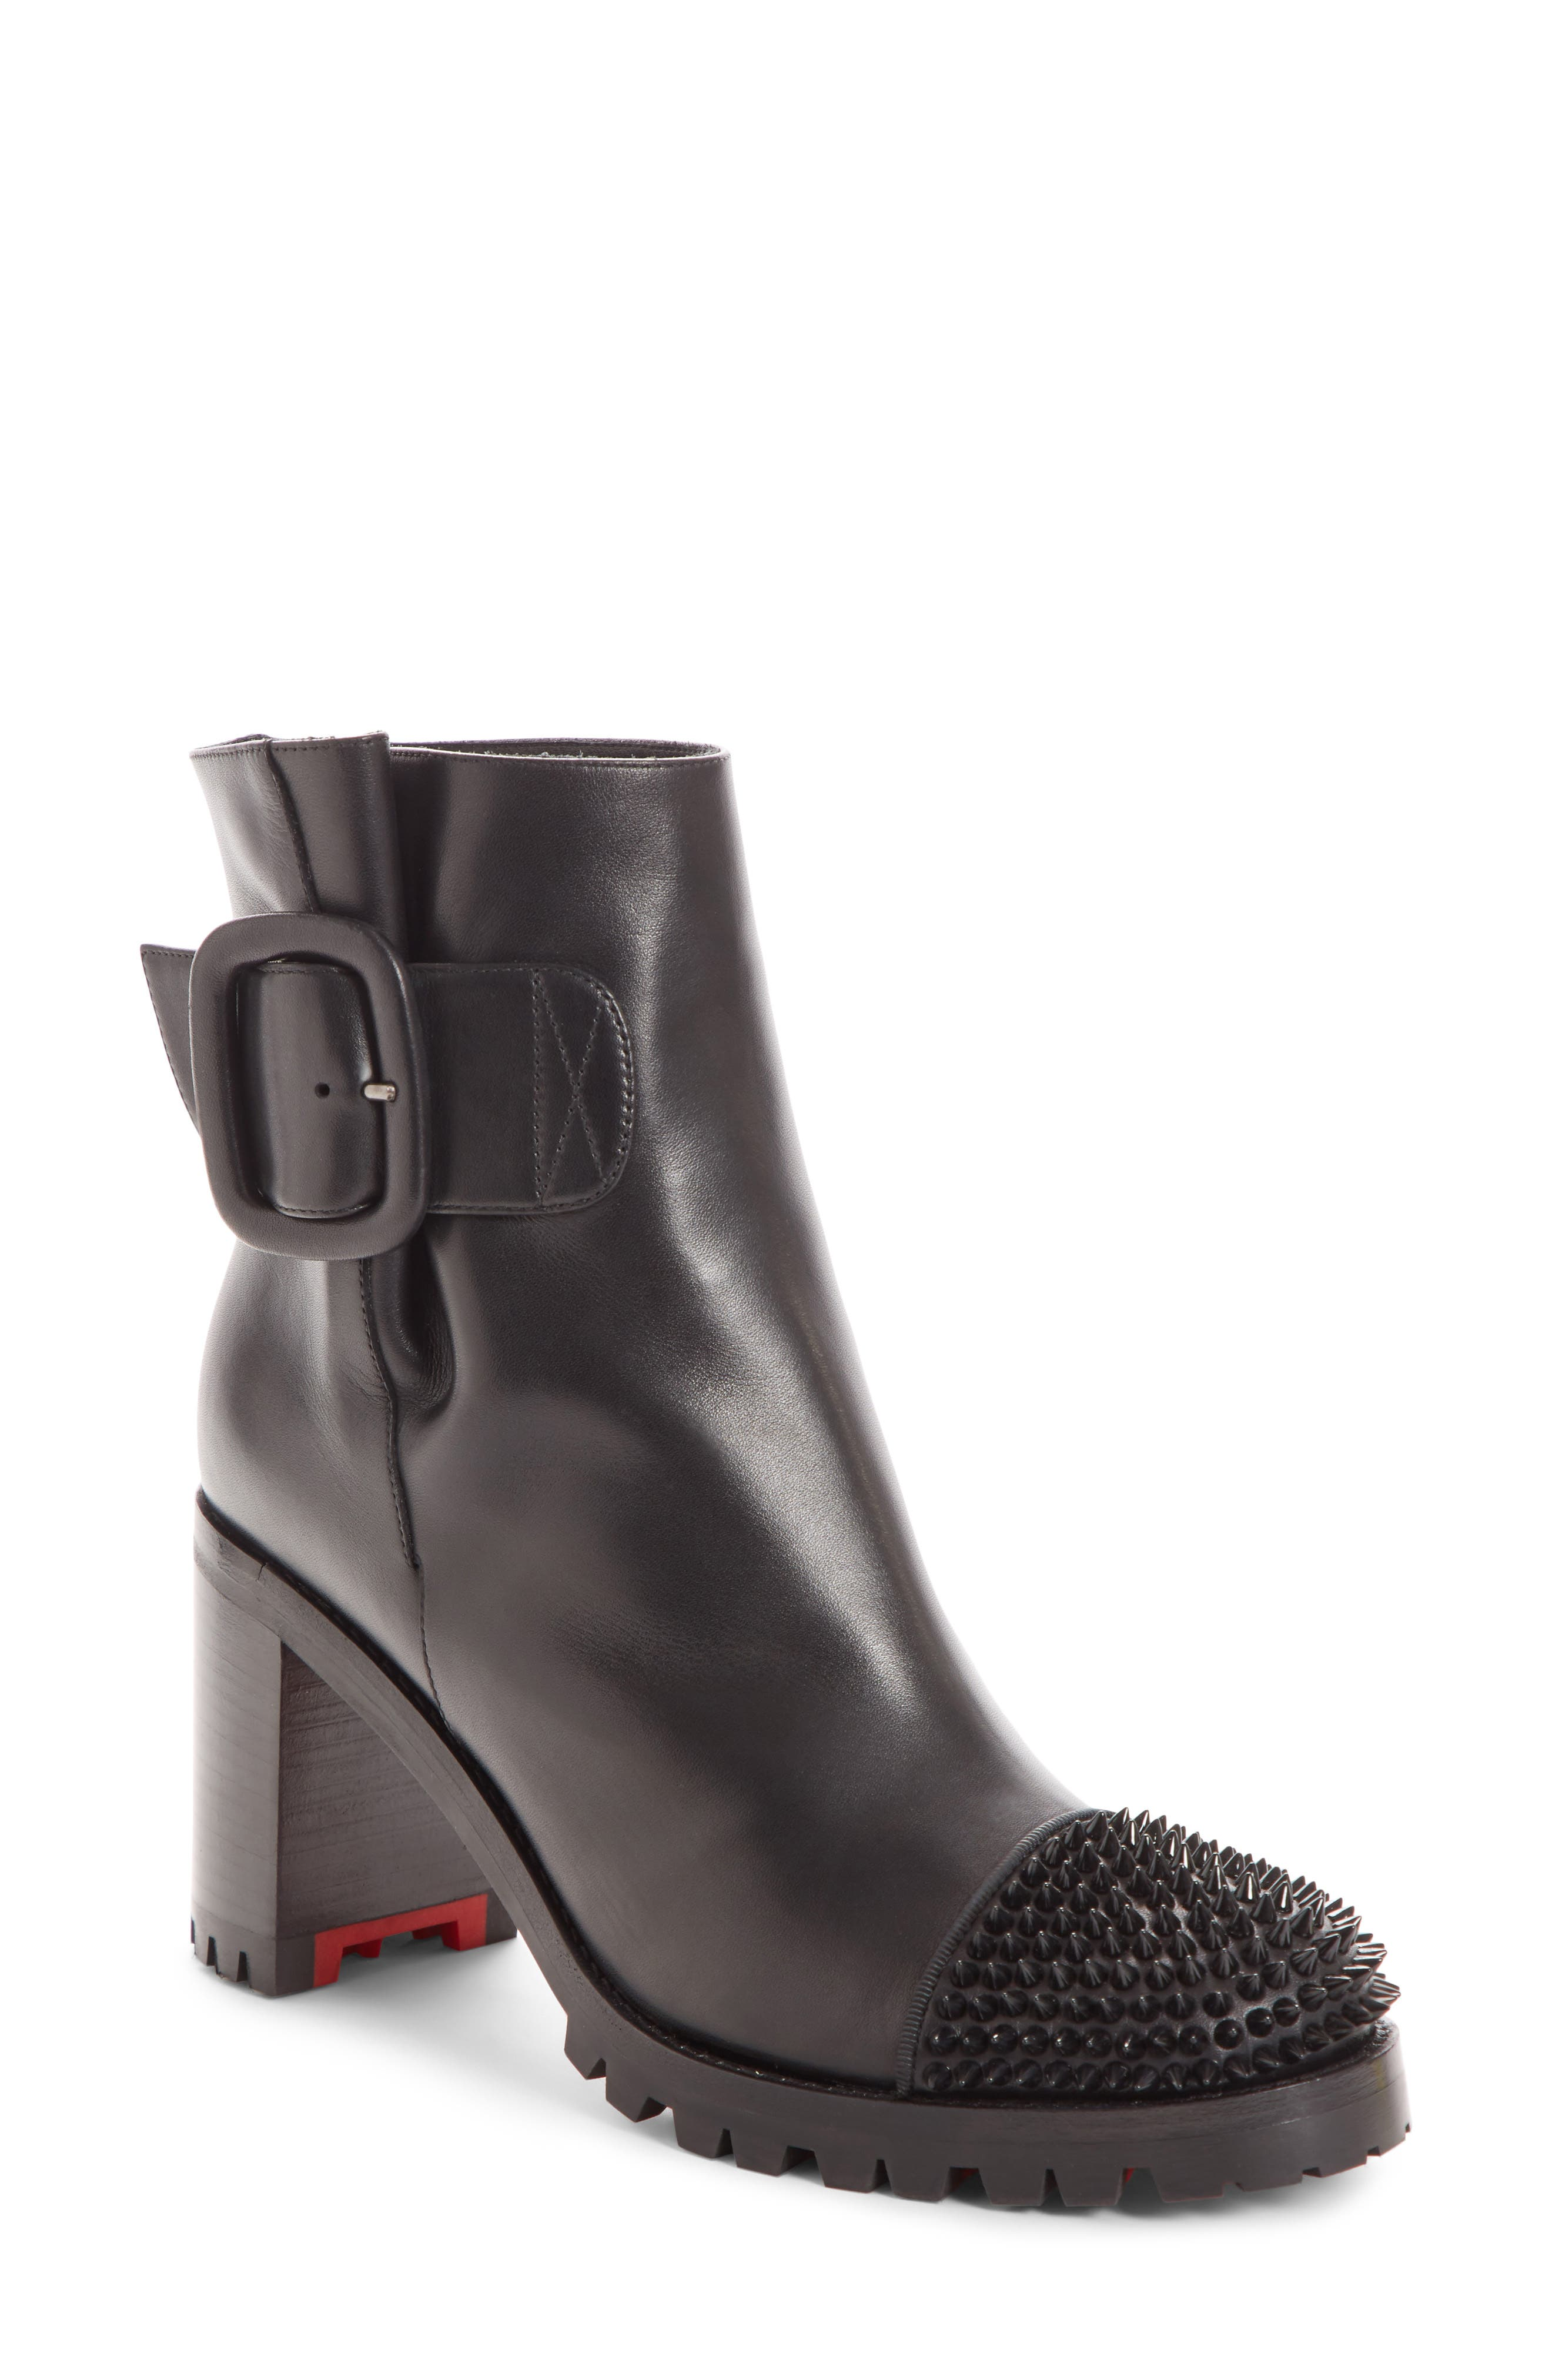 CHRISTIAN LOUBOUTIN Olivia Spiked Boot, Main, color, 001